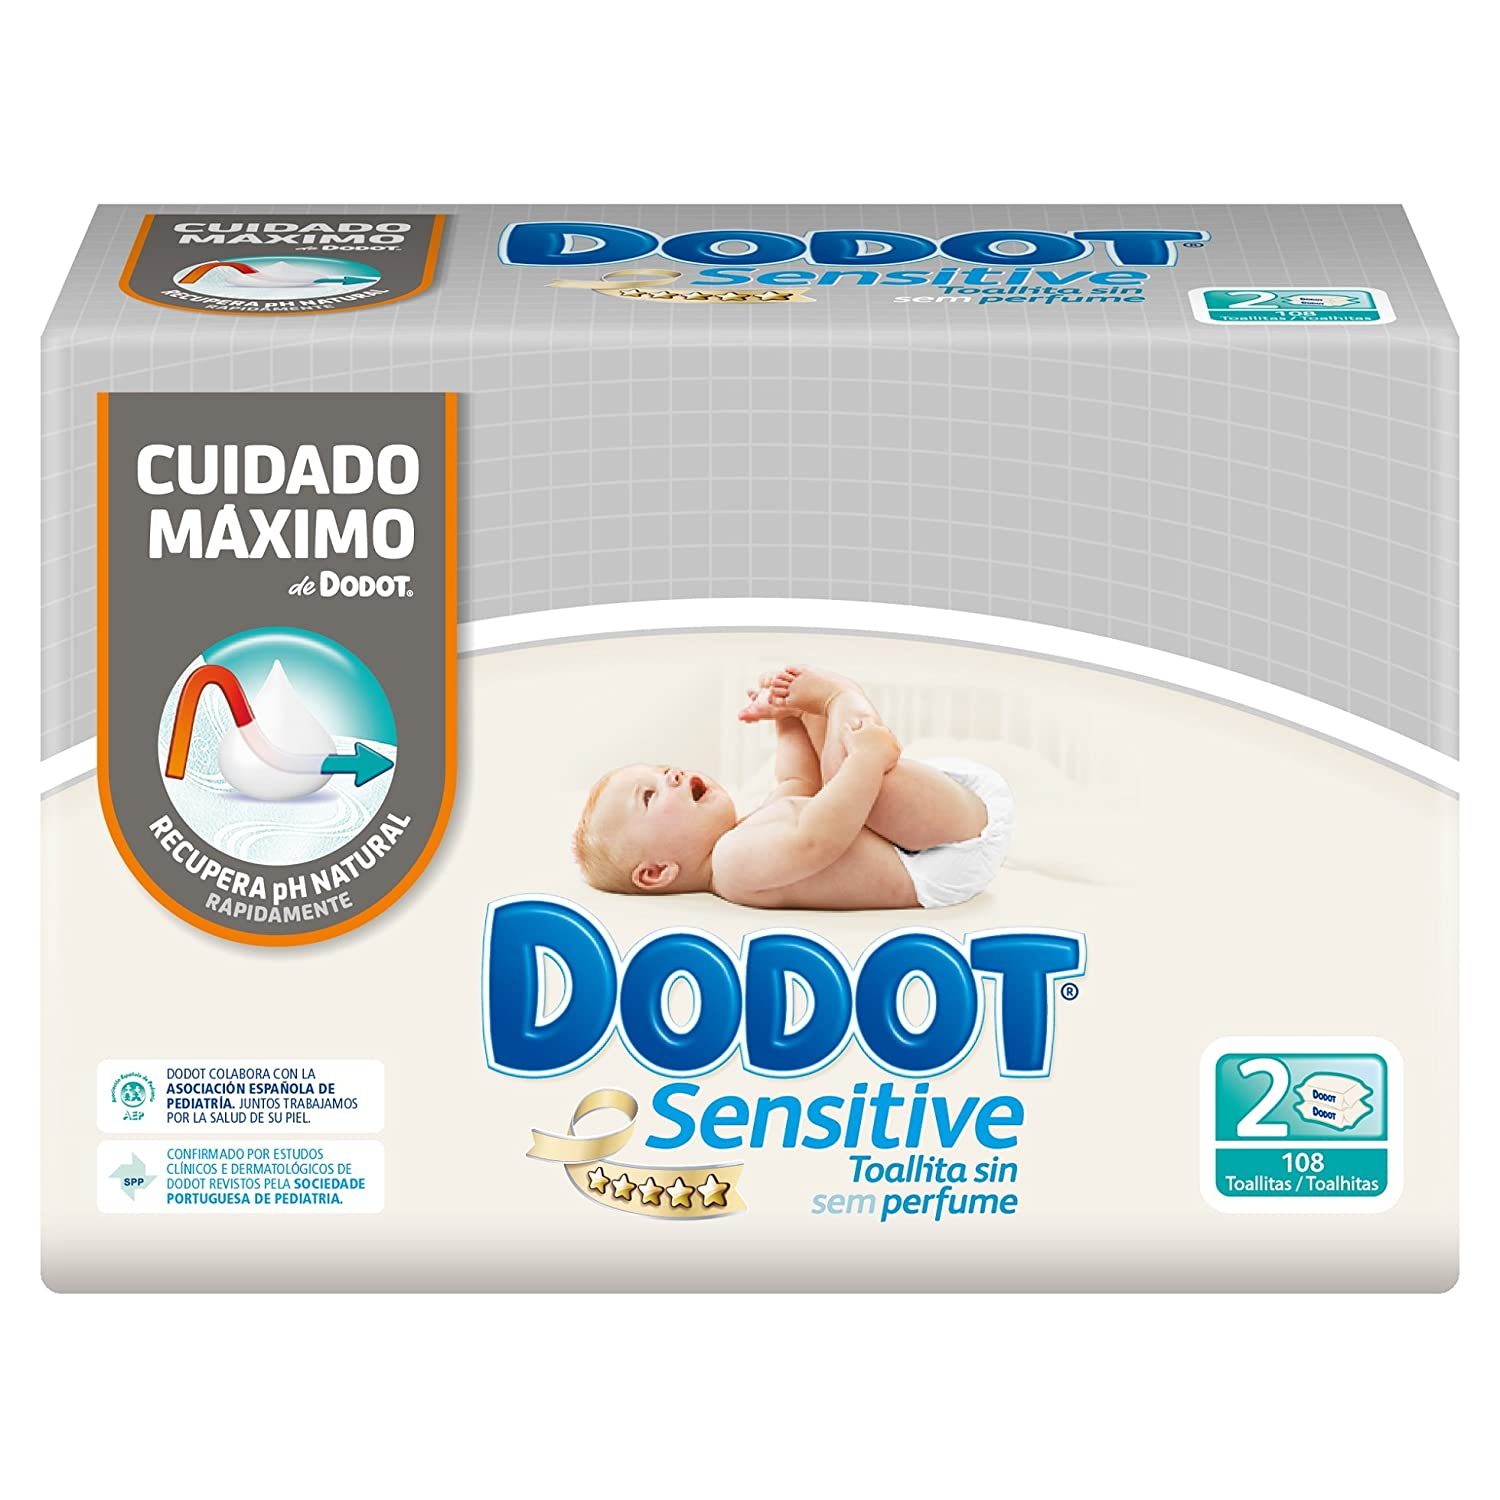 DODOT - TOALL. DODOT SENSITIVE 108 RECAMBIO DUOPACK: Amazon.es: Amazon Pantry